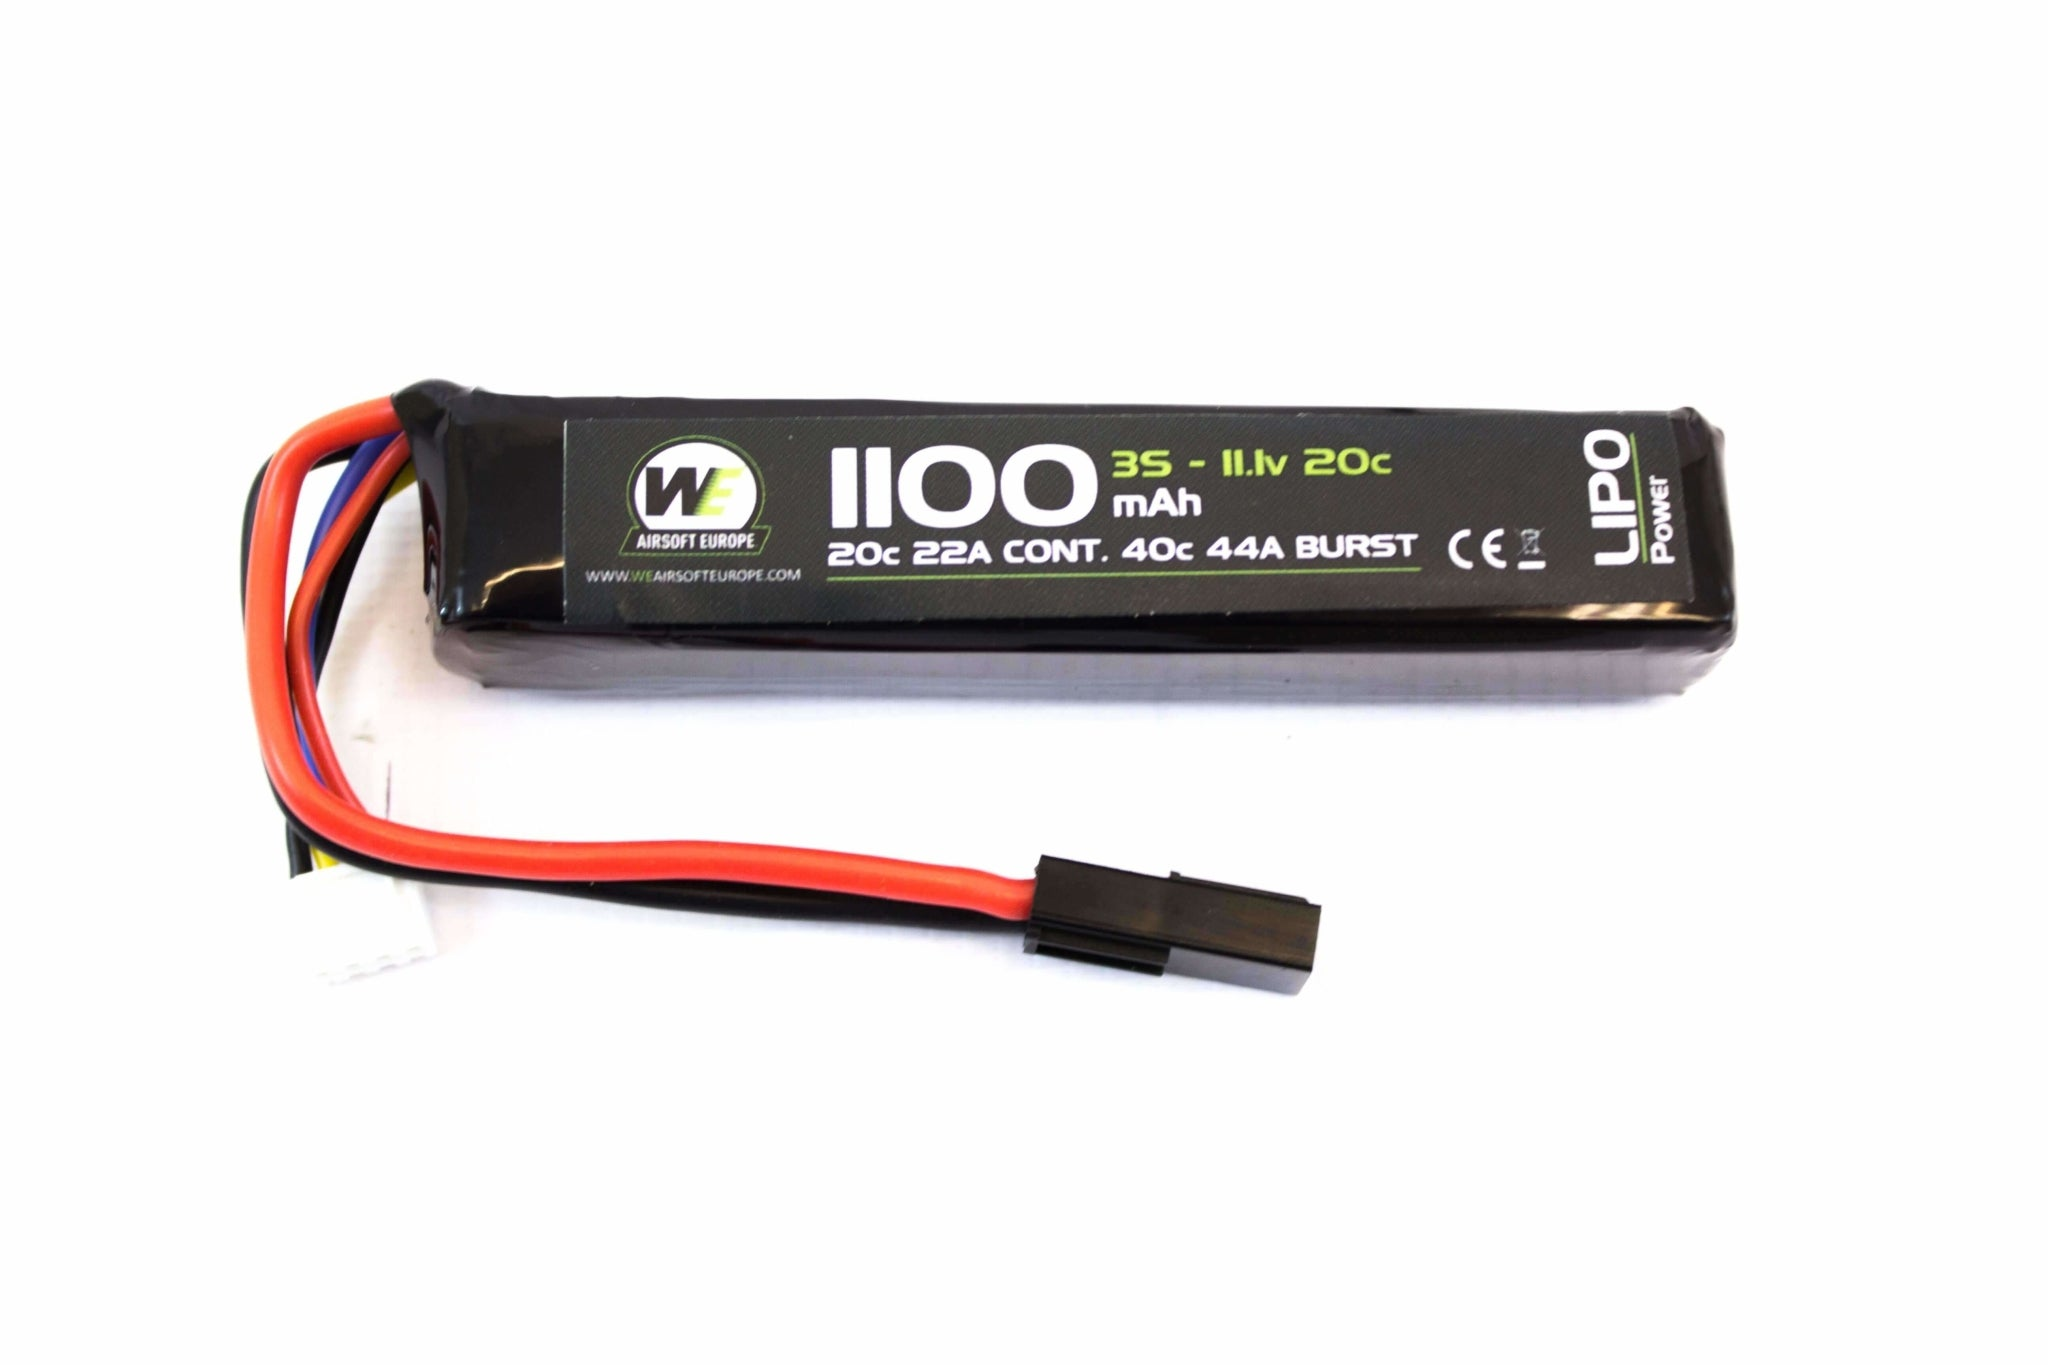 Nuprol Power 1100mah 11.1v 20c Stick Type (Mini Tamaya)